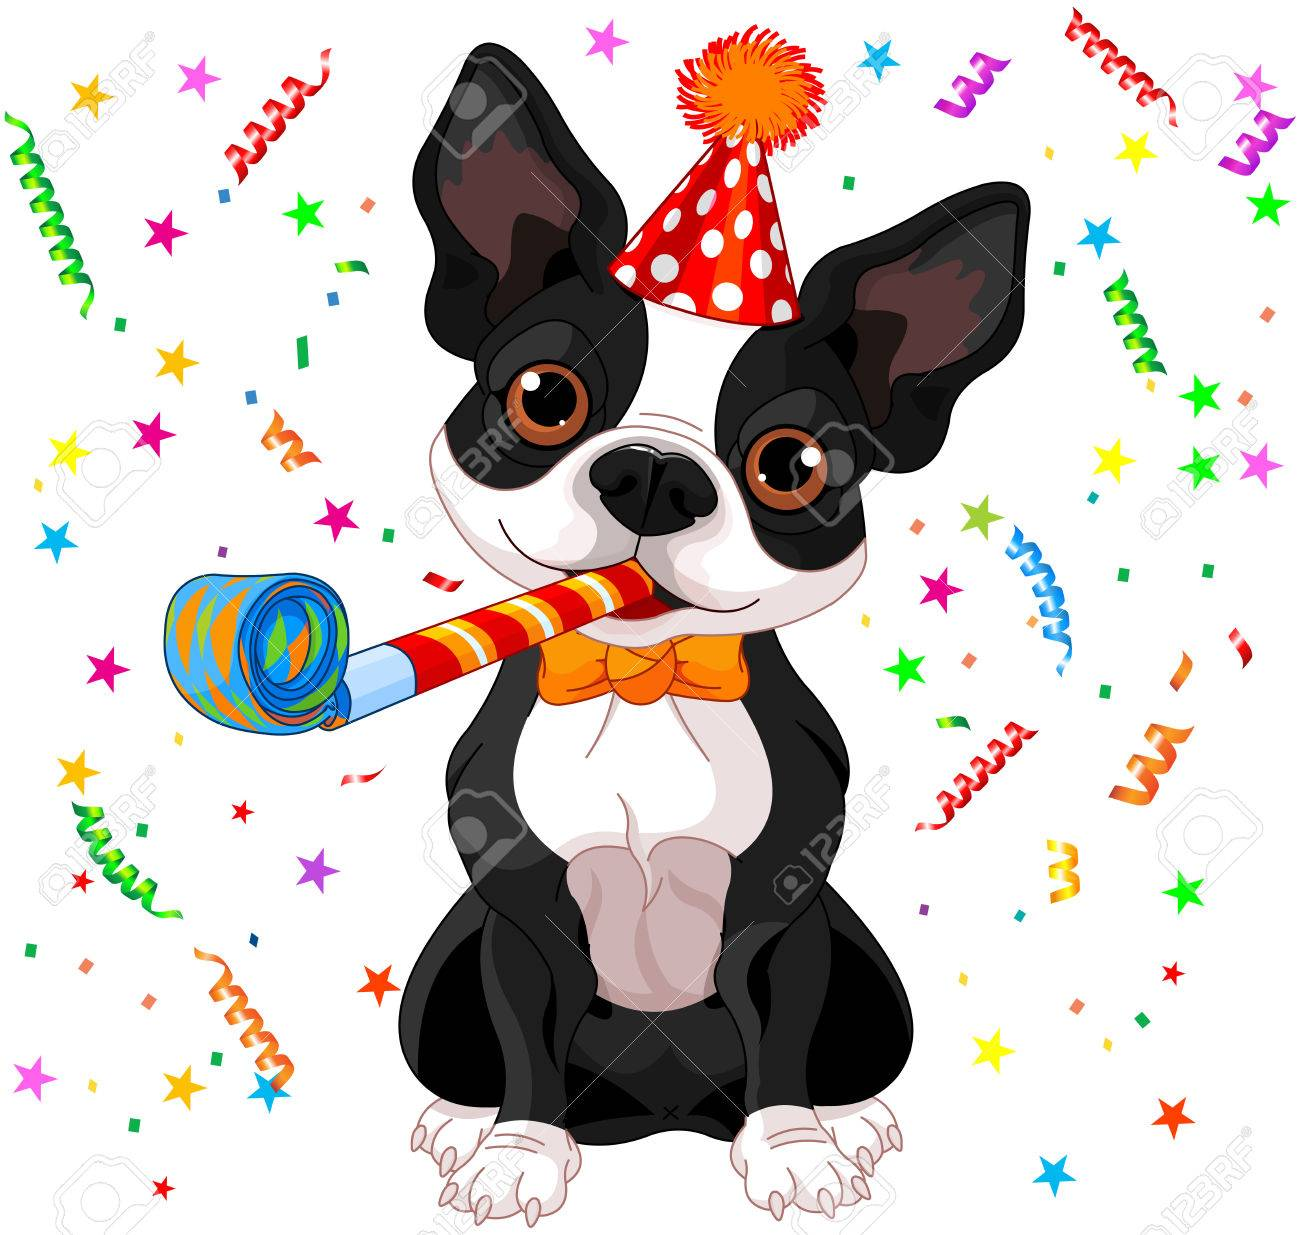 Apprendre à son chien à aimer le calme - Page 3 35588778-illustration-of-cute-boston-terrier-celebrating